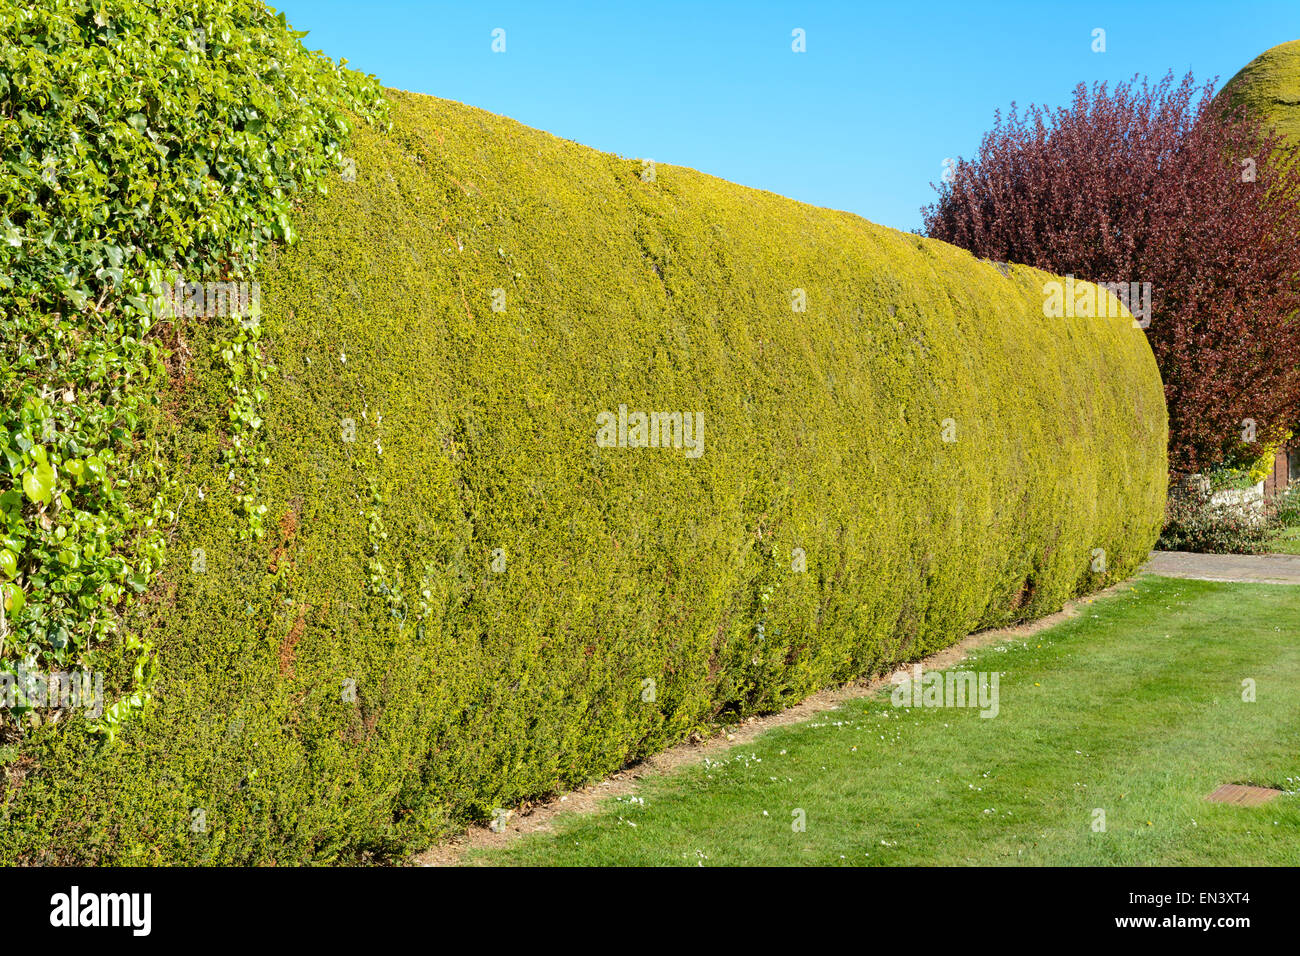 Long trimmed green hedge in a garden. - Stock Image